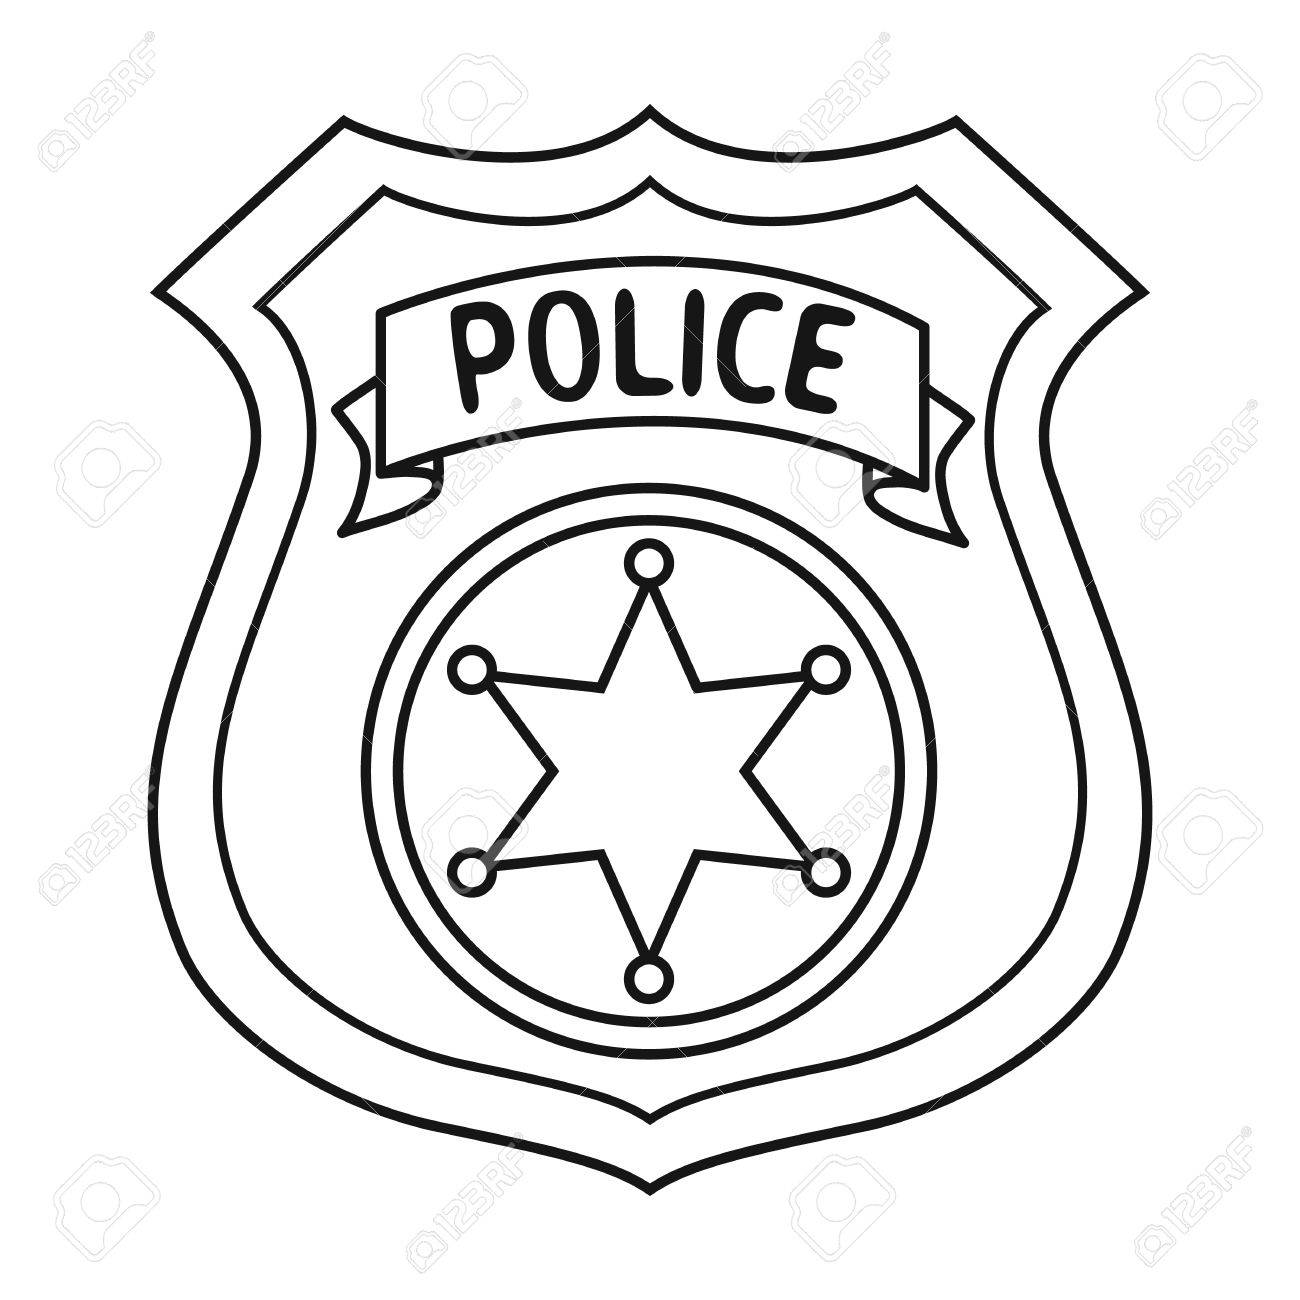 Police badge coloring. Sheriff clipart free download